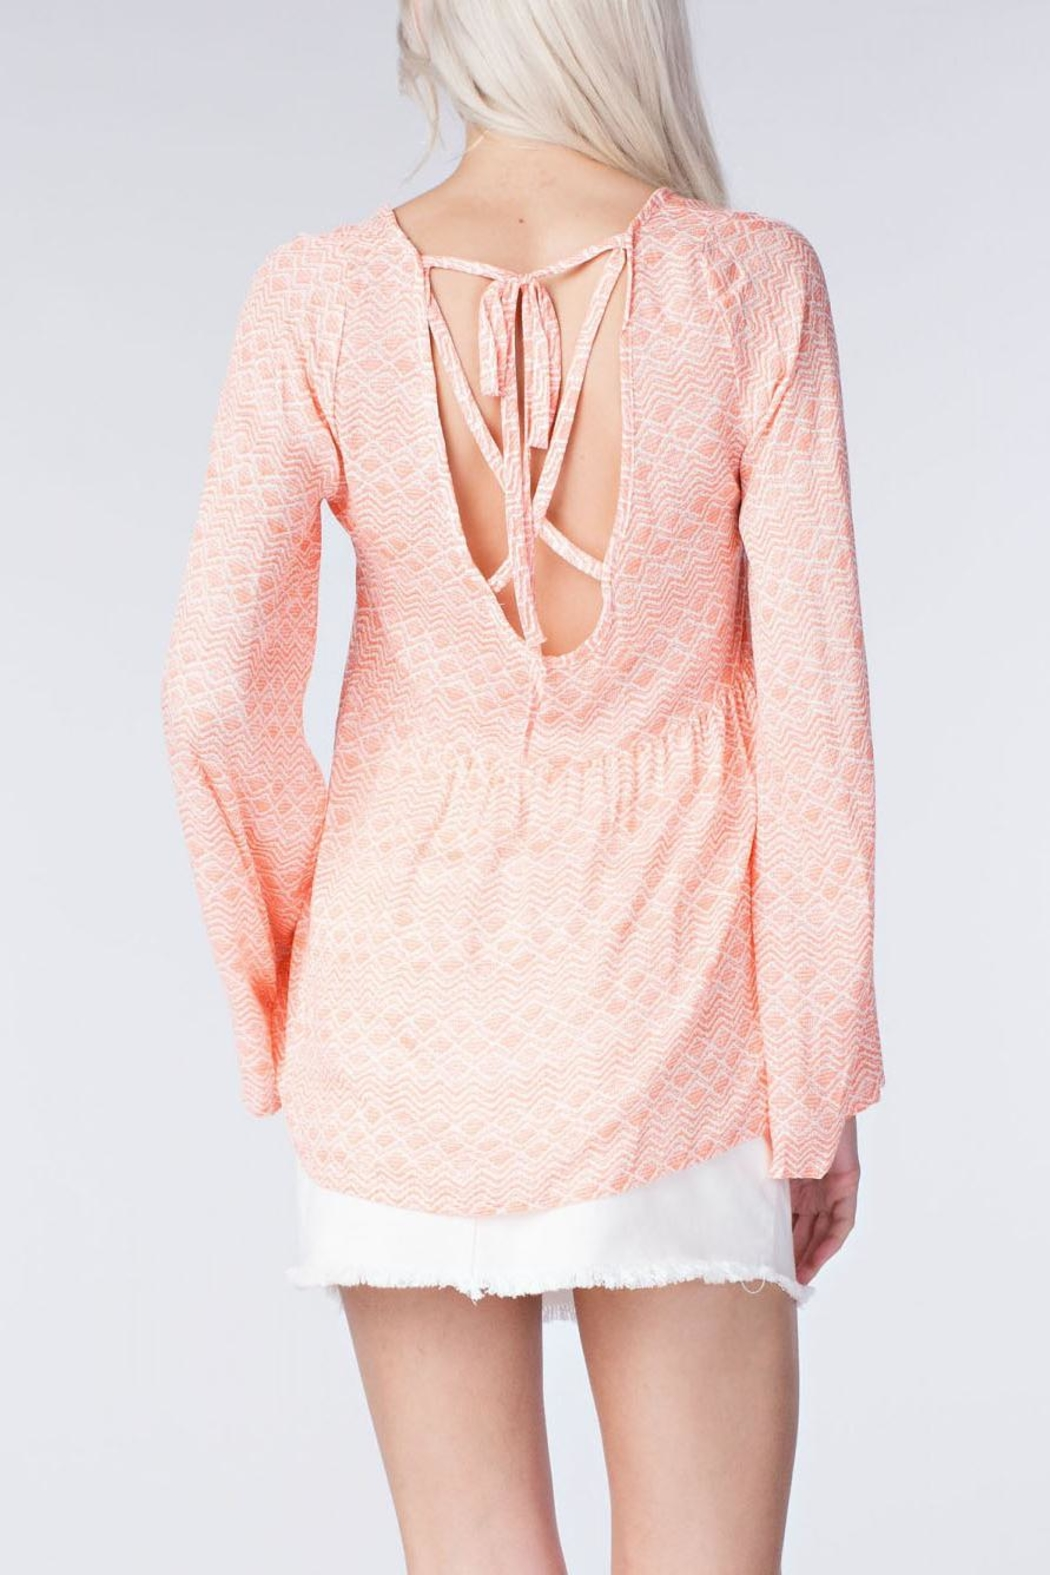 honey belle Coral Breeze Top - Front Full Image